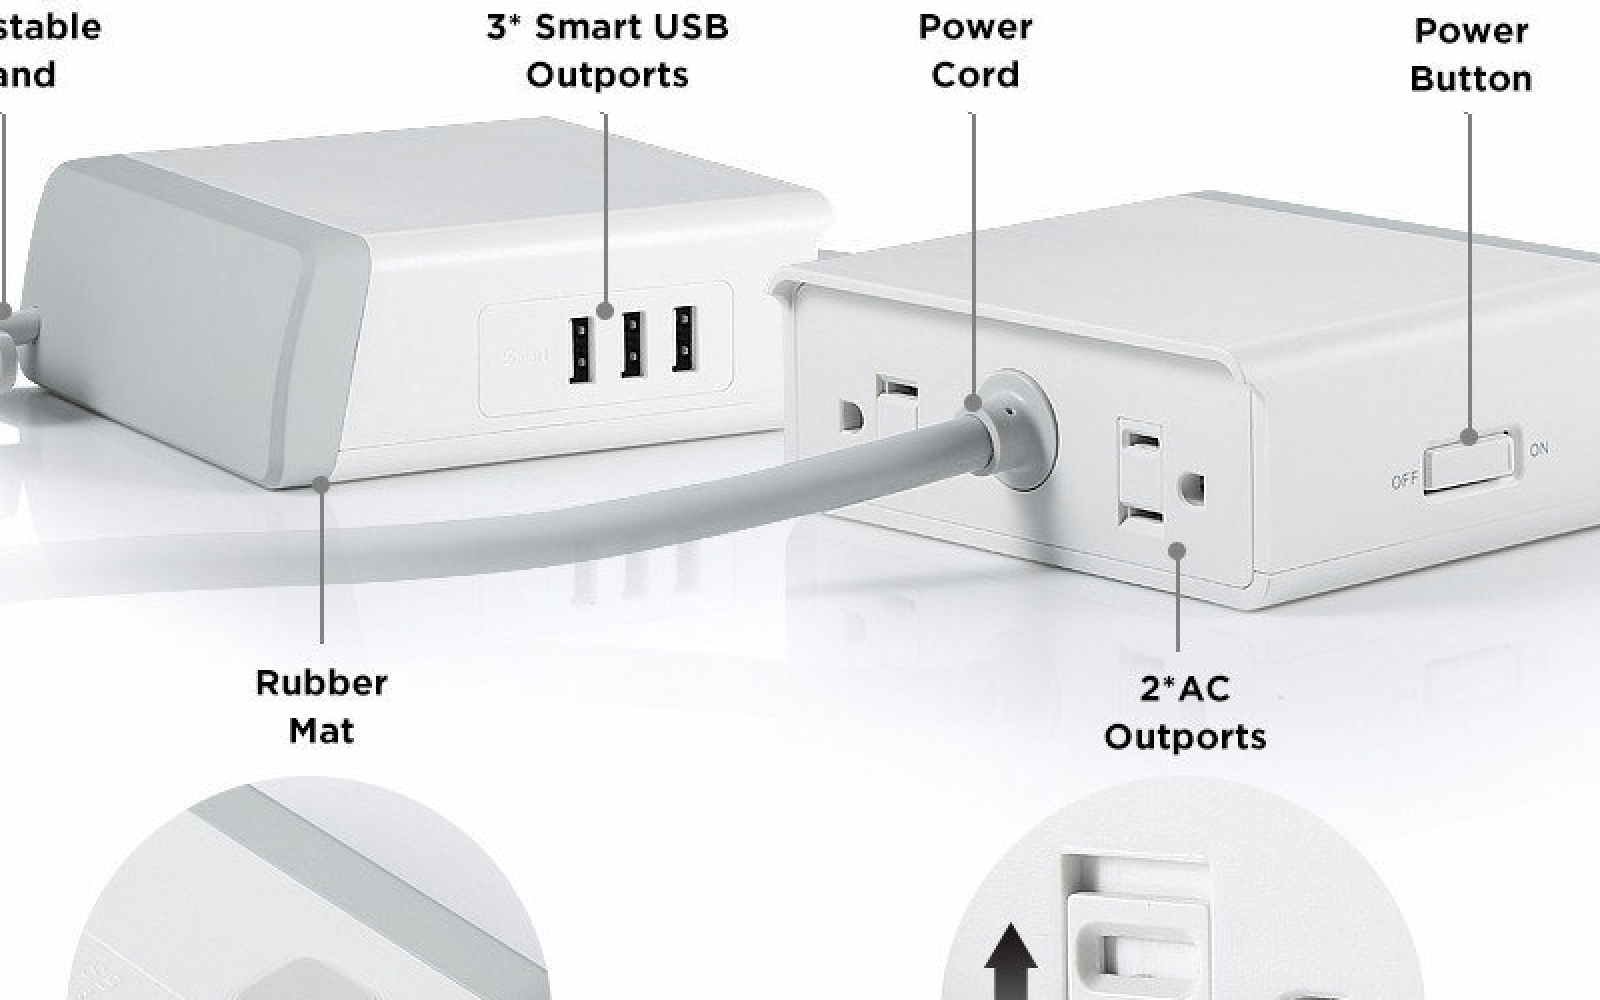 Quick Review: EasyACC 3 USB-port/2 AC-port surge protector is perfect for bedside, desk or travel: $25 shipped